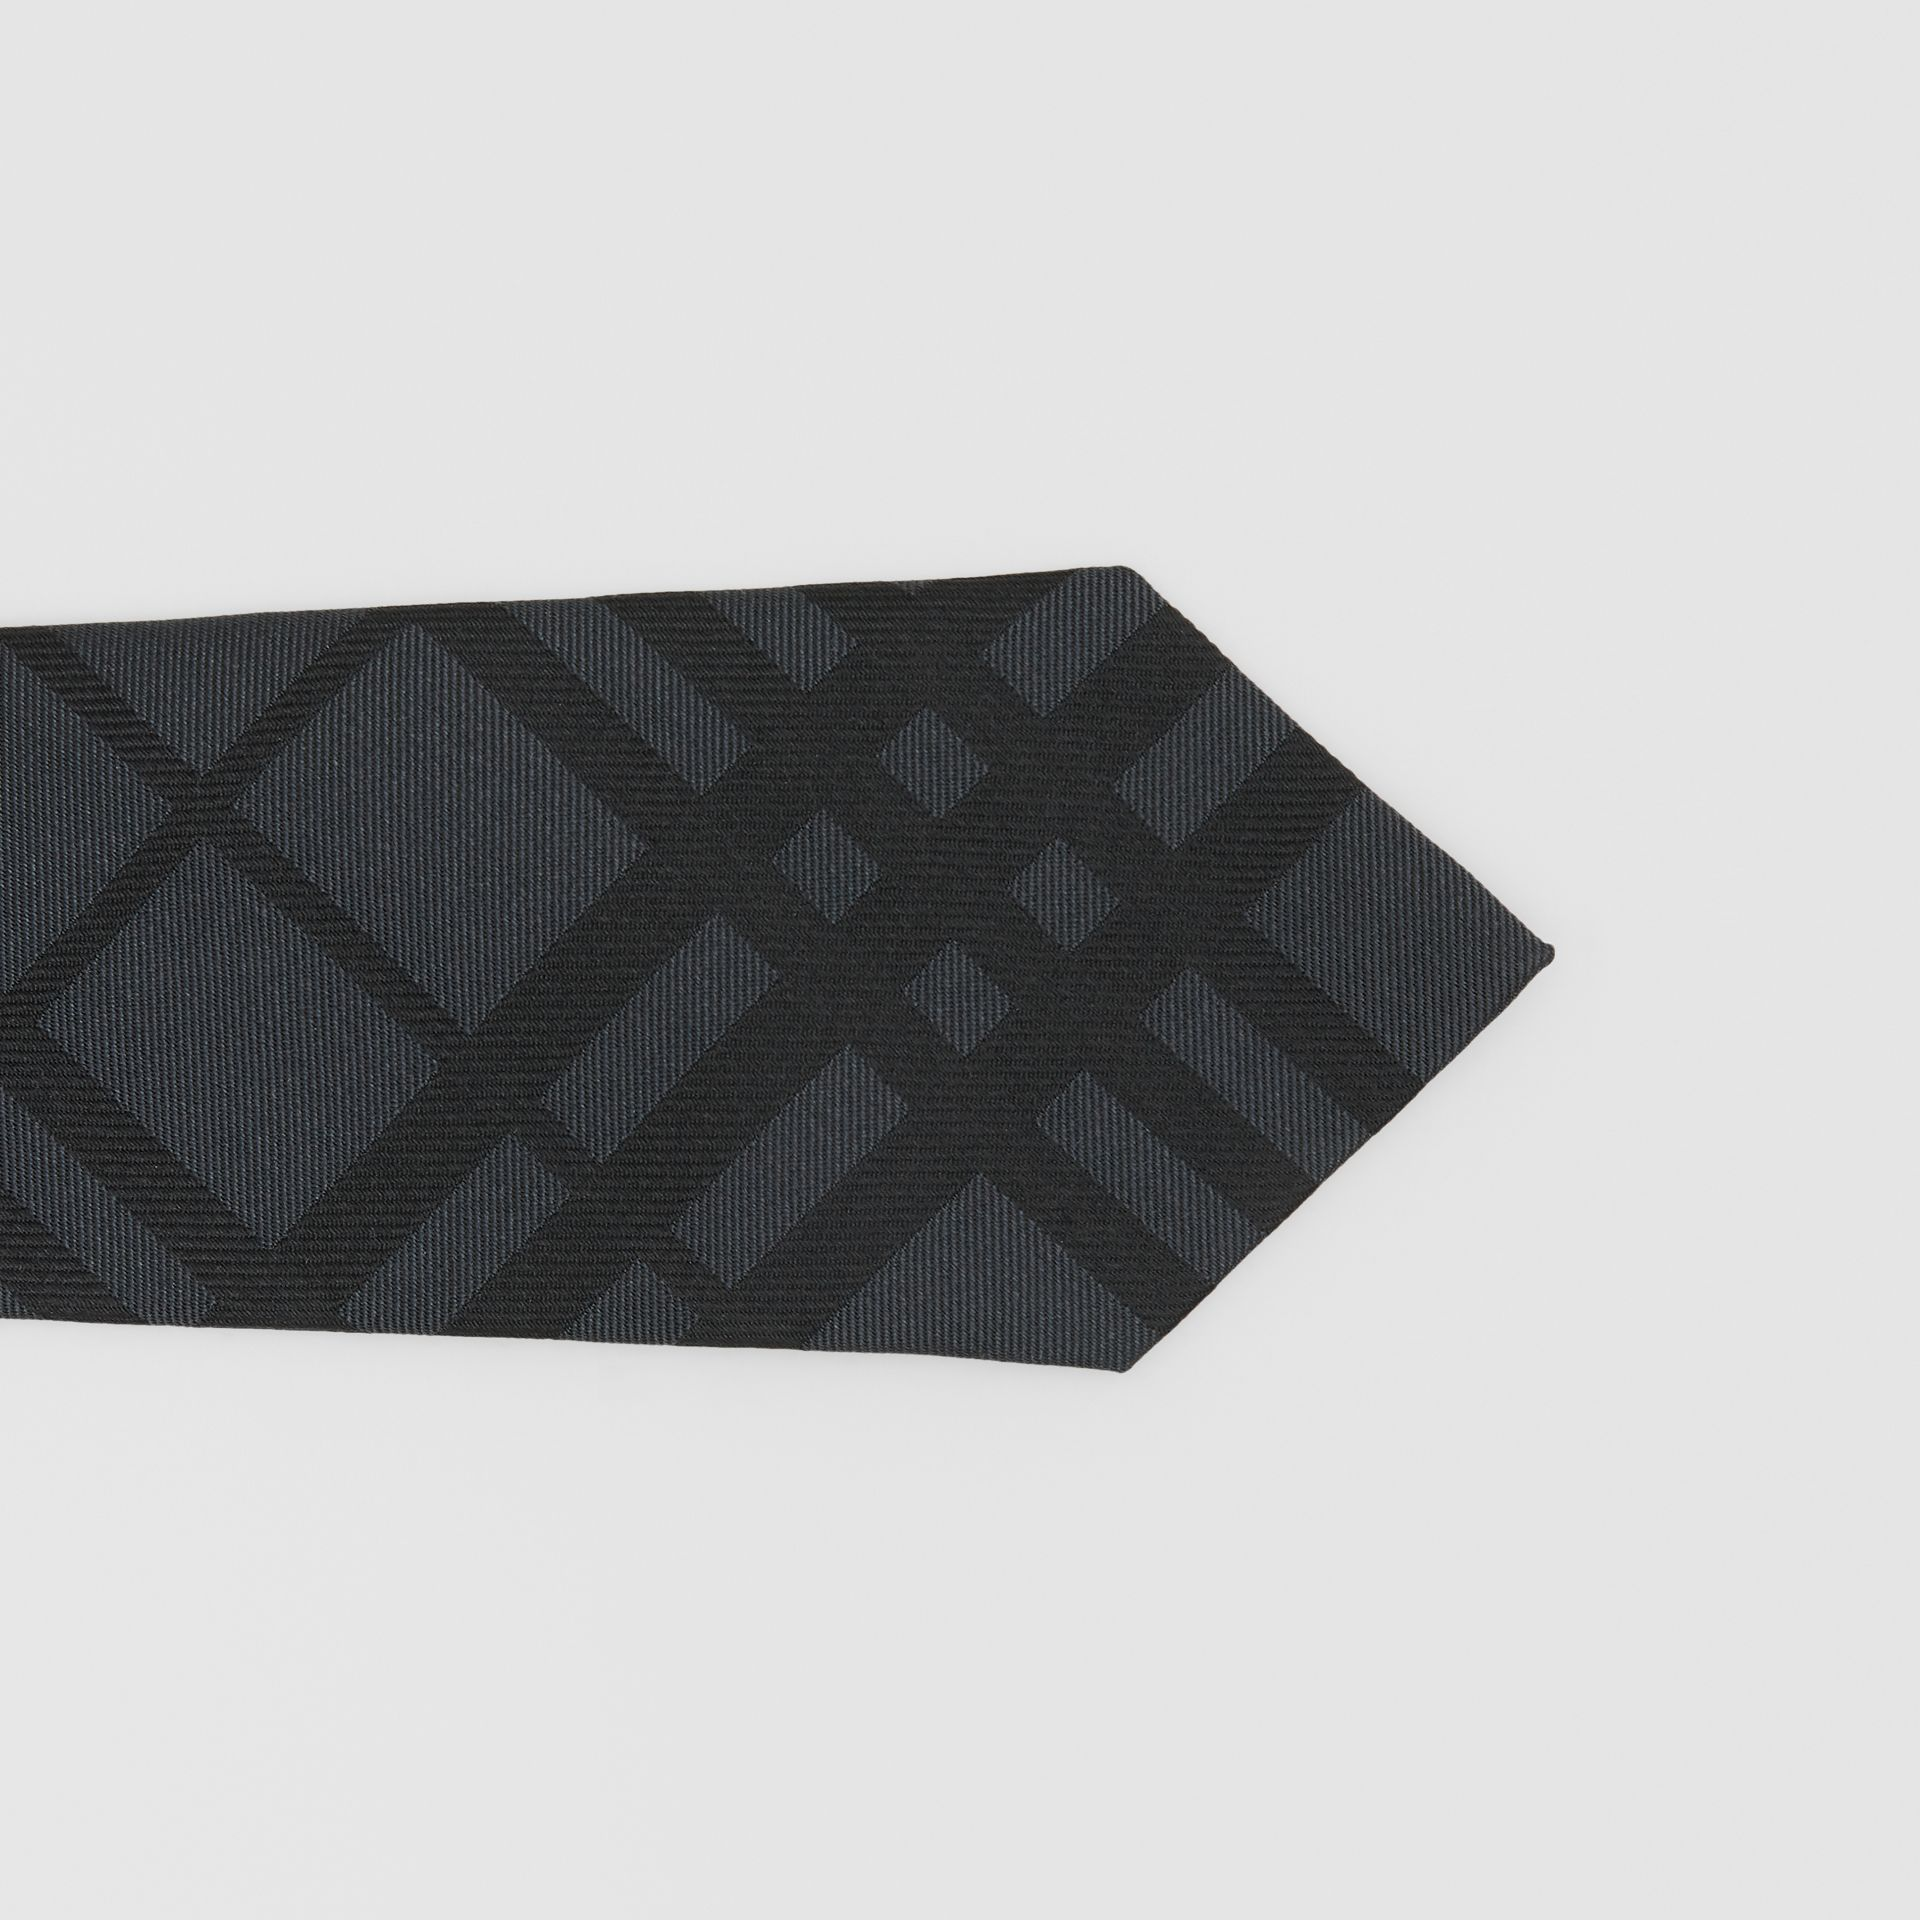 Classic Cut Check Silk Jacquard Tie in Charcoal - Men | Burberry Hong Kong S.A.R - gallery image 1